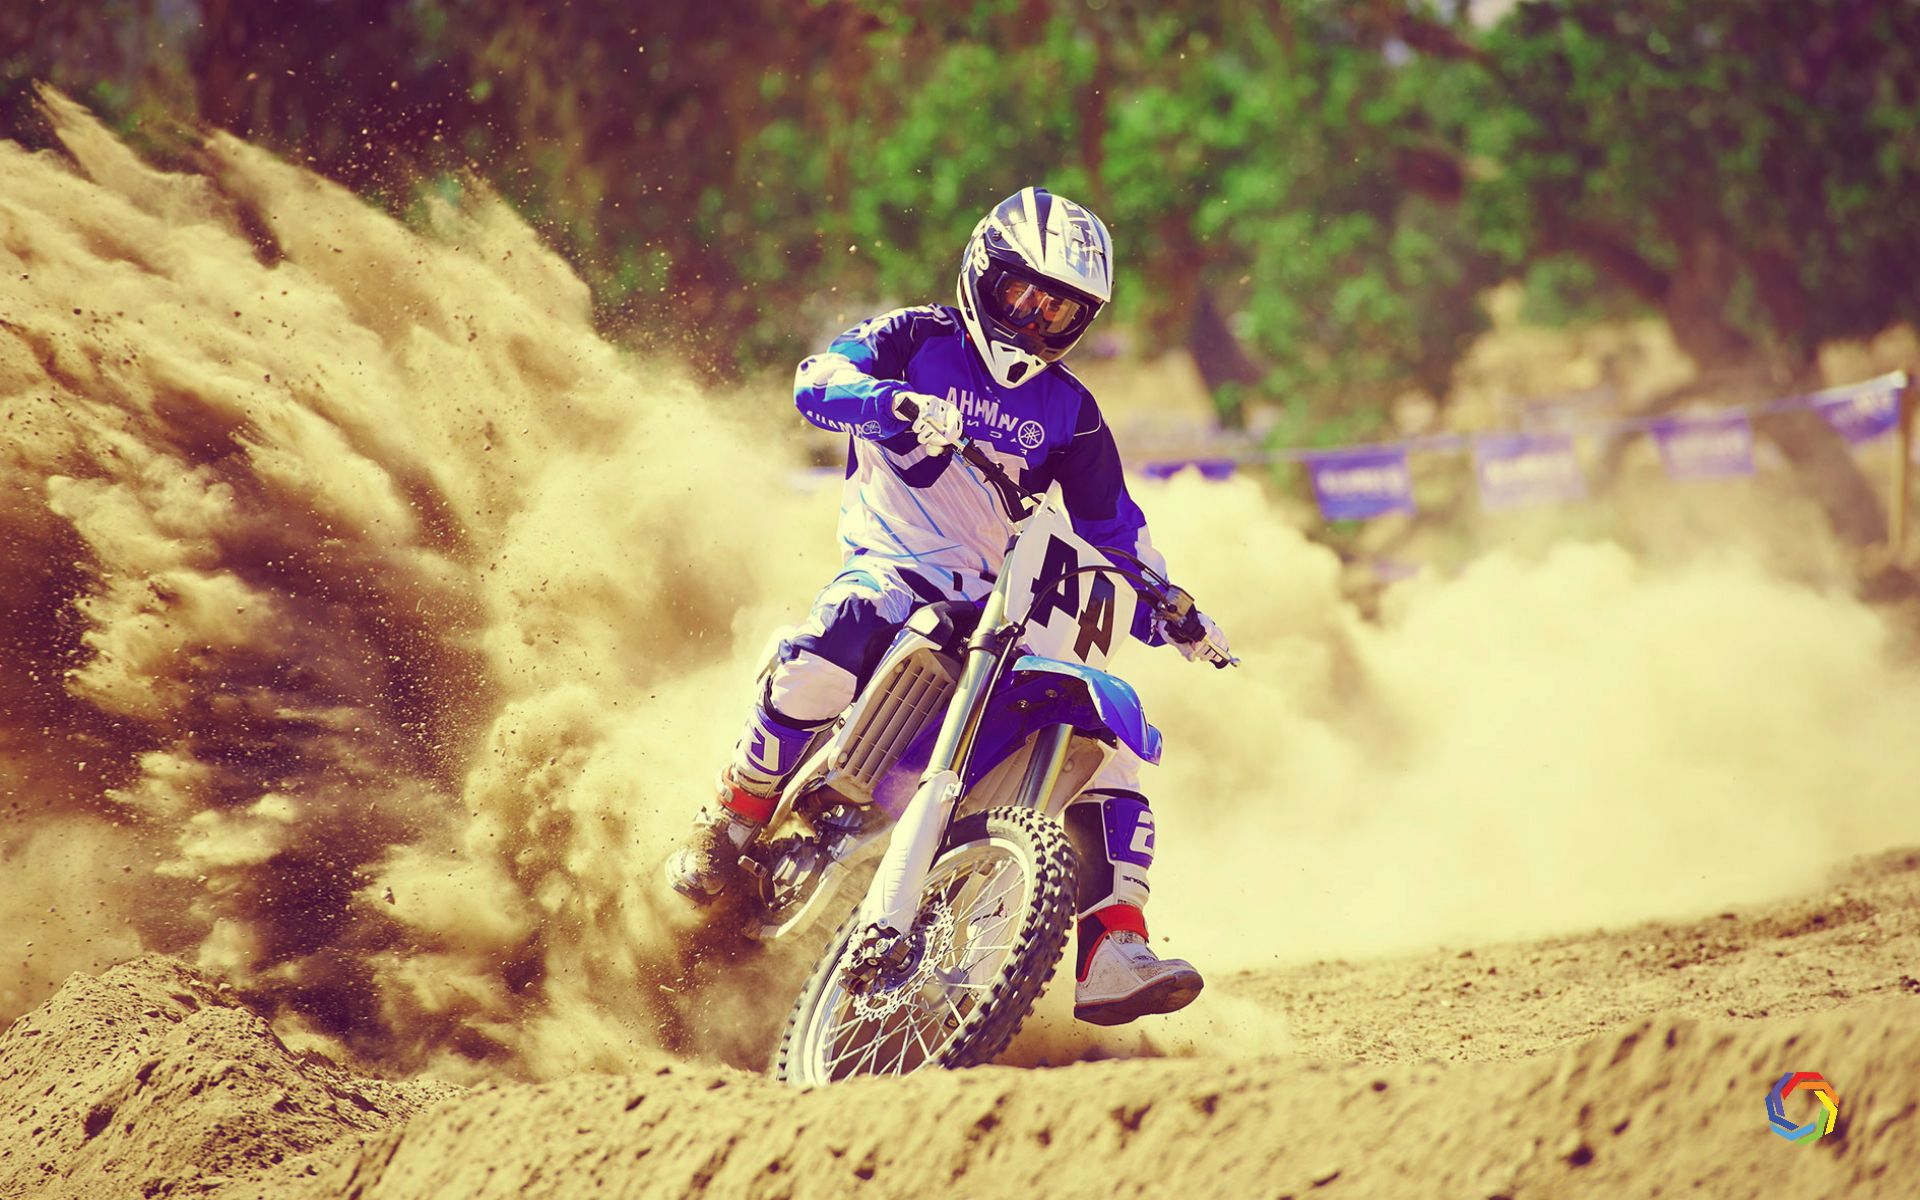 Download Awesome Dirt Bike Full HD Backgrounds HD